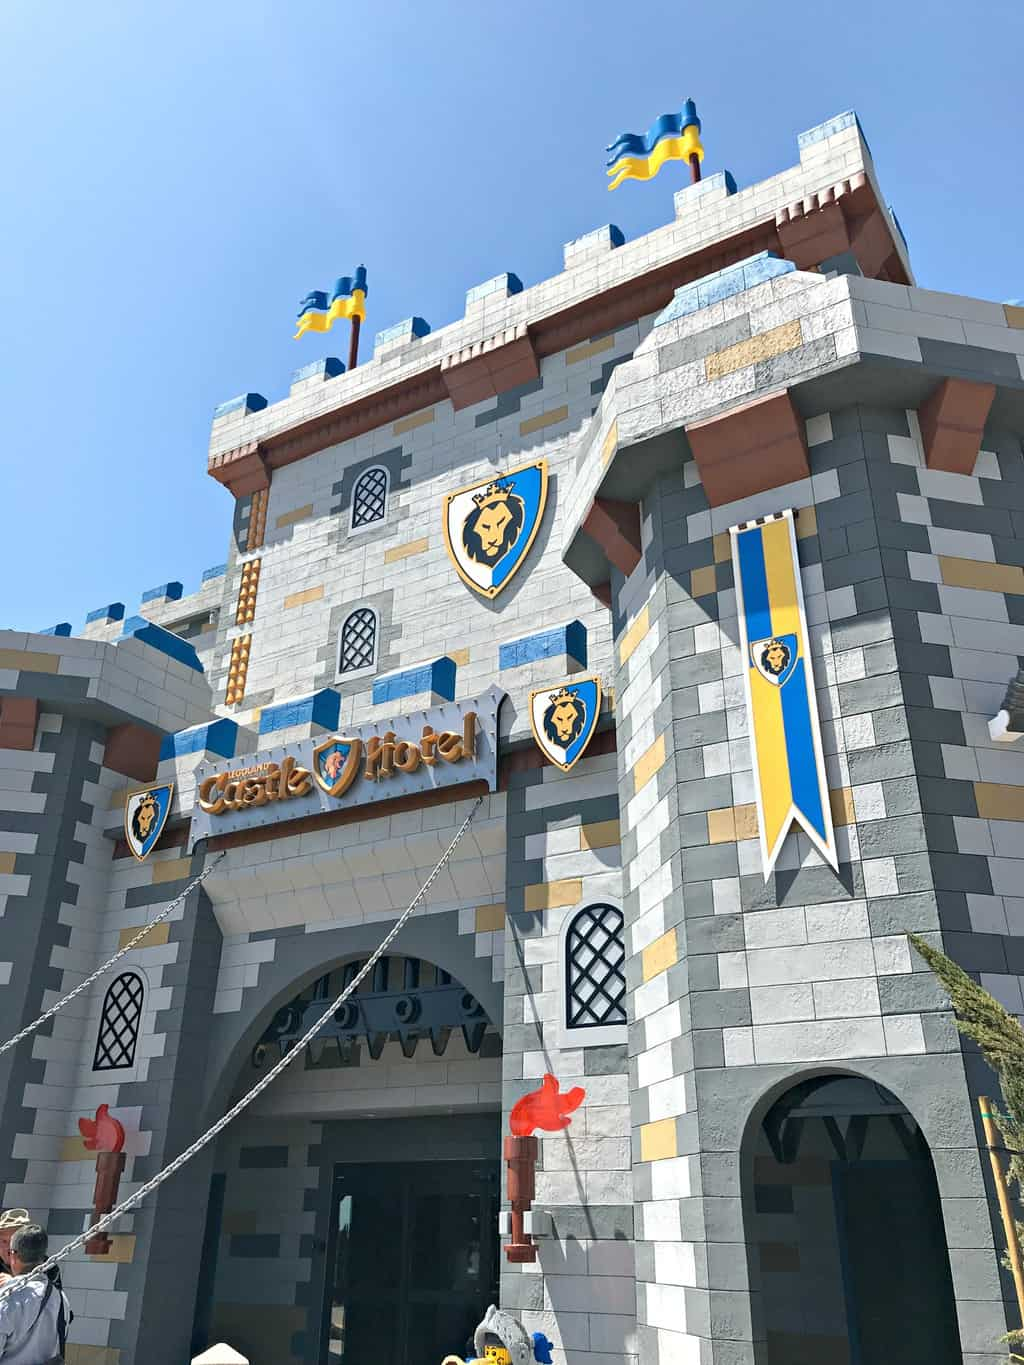 Outside view of the LEGOLAND Castle Hotel